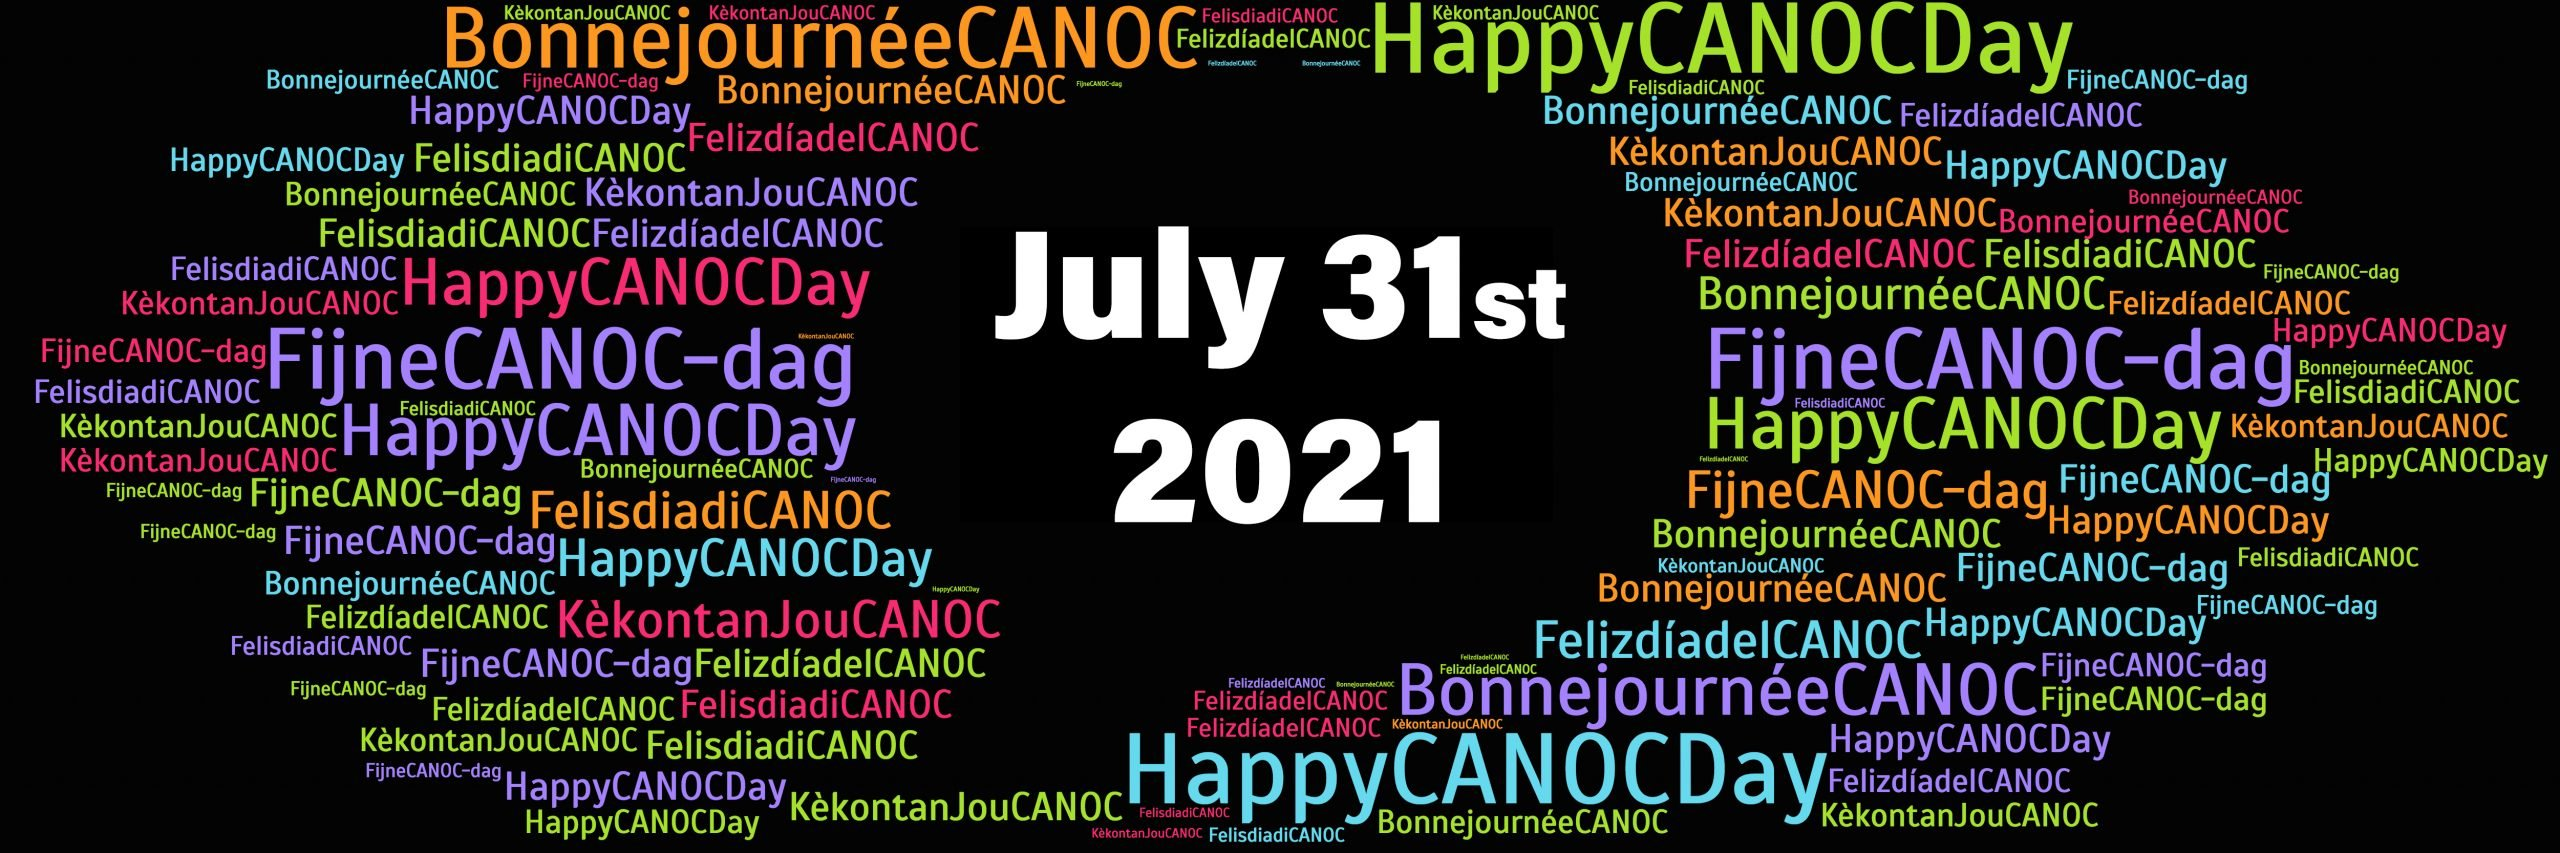 CANOC DAY header